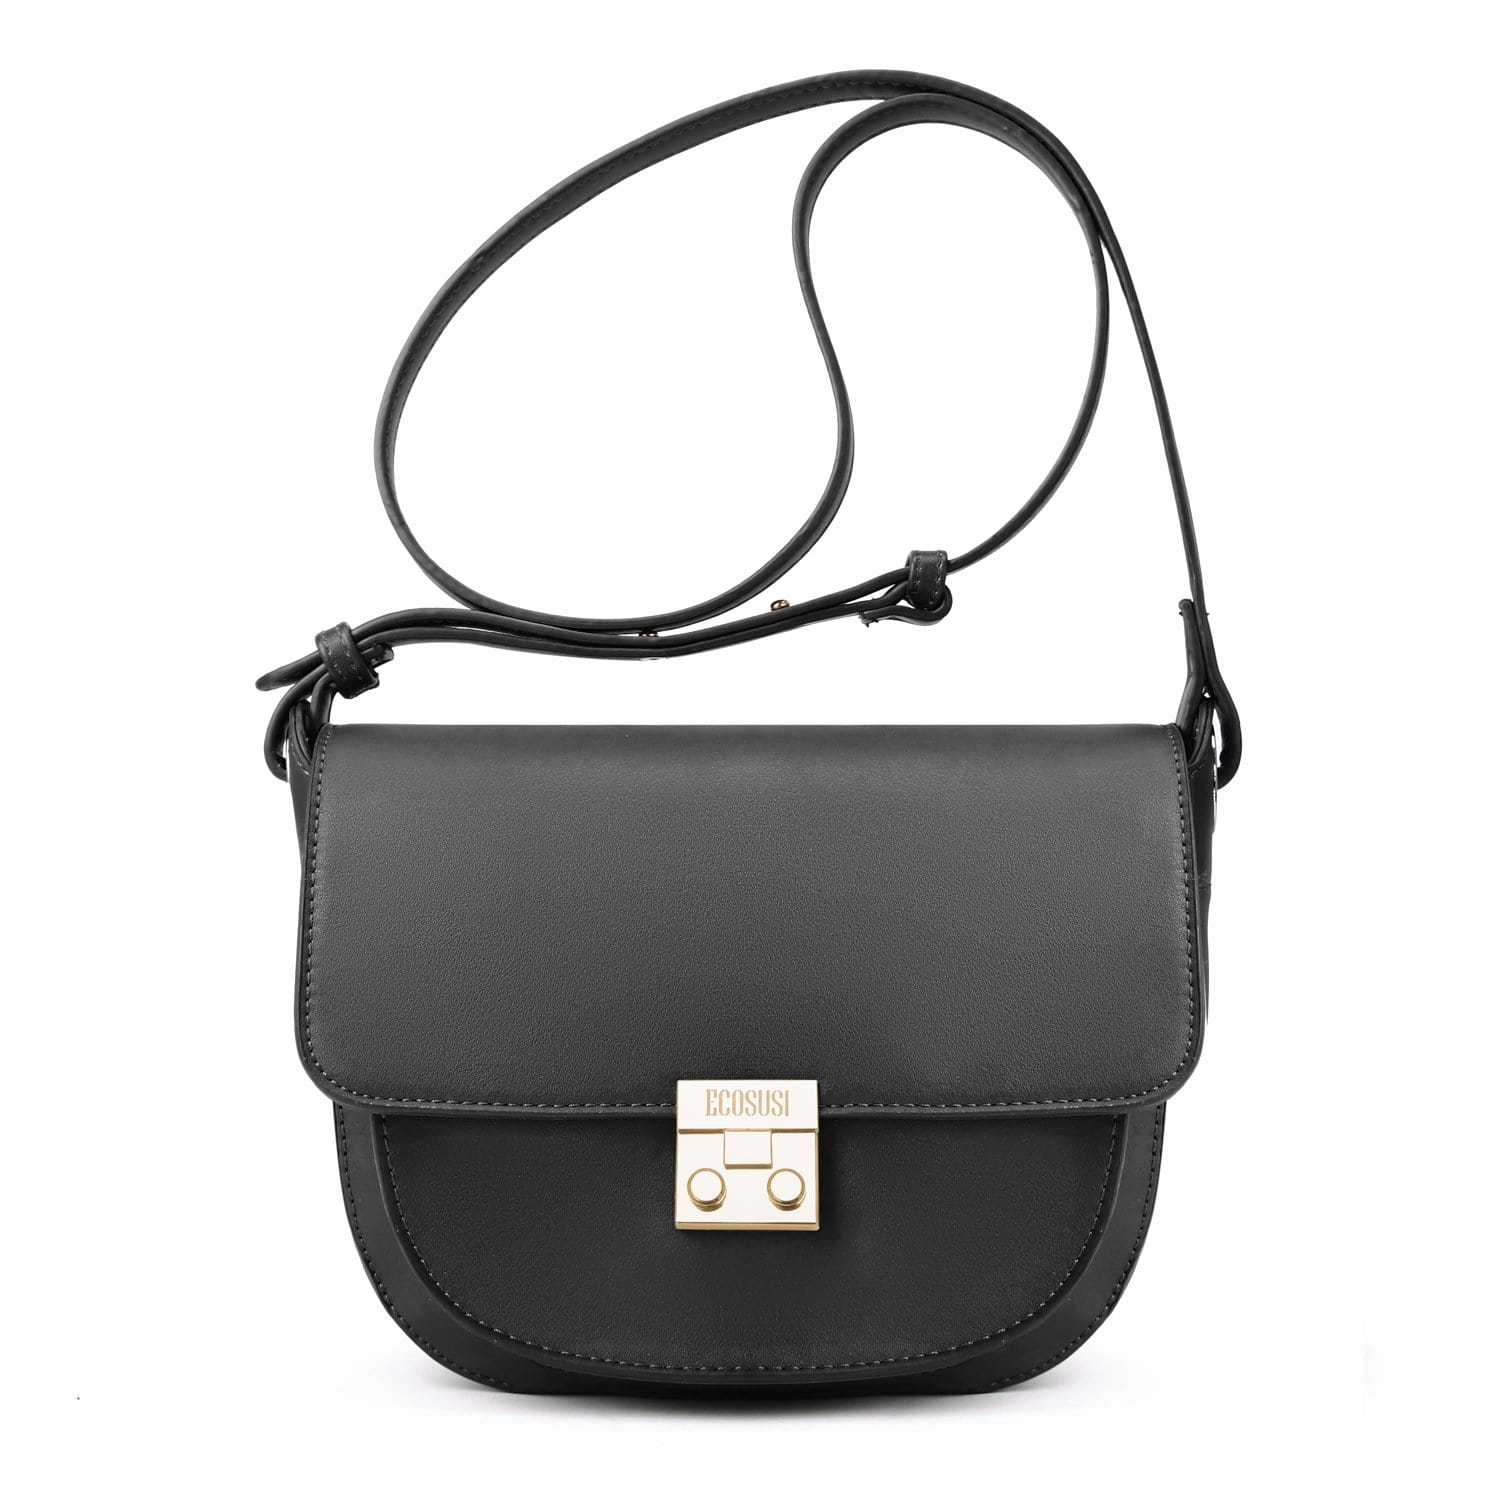 9fdf37b34ca6 Women s Crossbody Saddle Bags Shoulder Purse with Flap Top   Phone Pocket